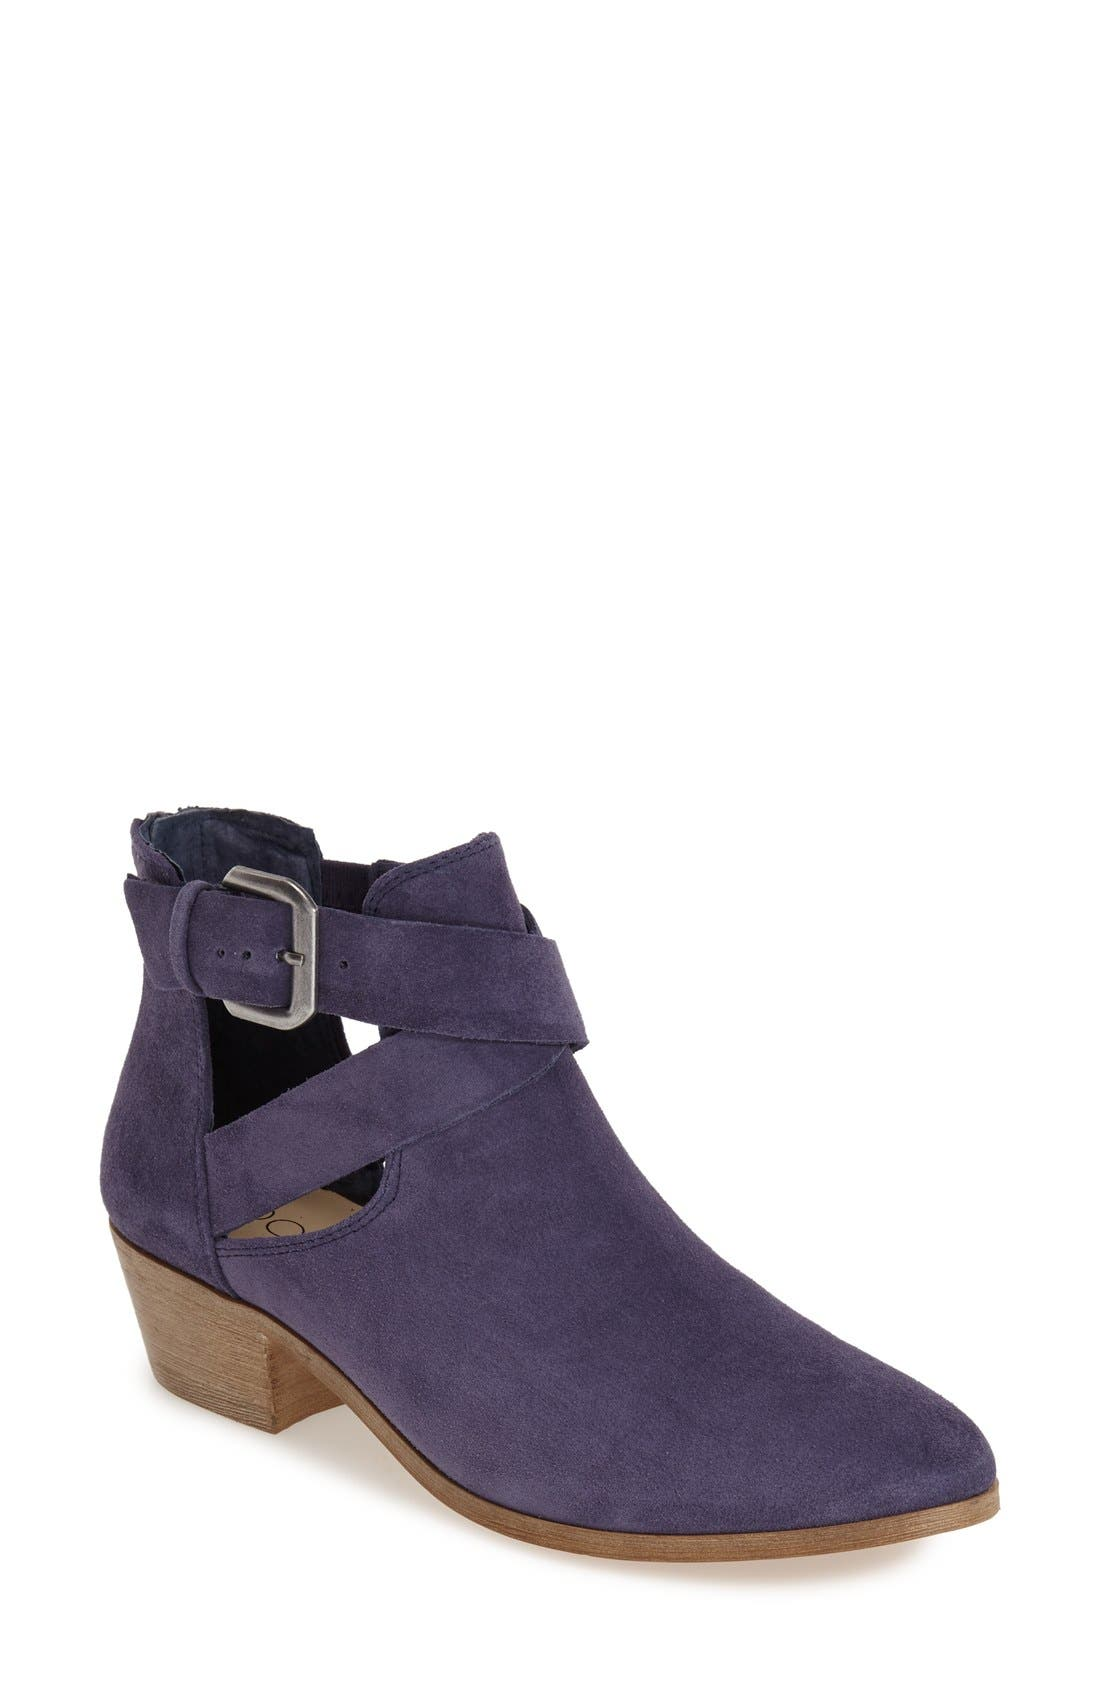 Alternate Image 1 Selected - Sole Society 'Evie' Open Side Bootie (Women)